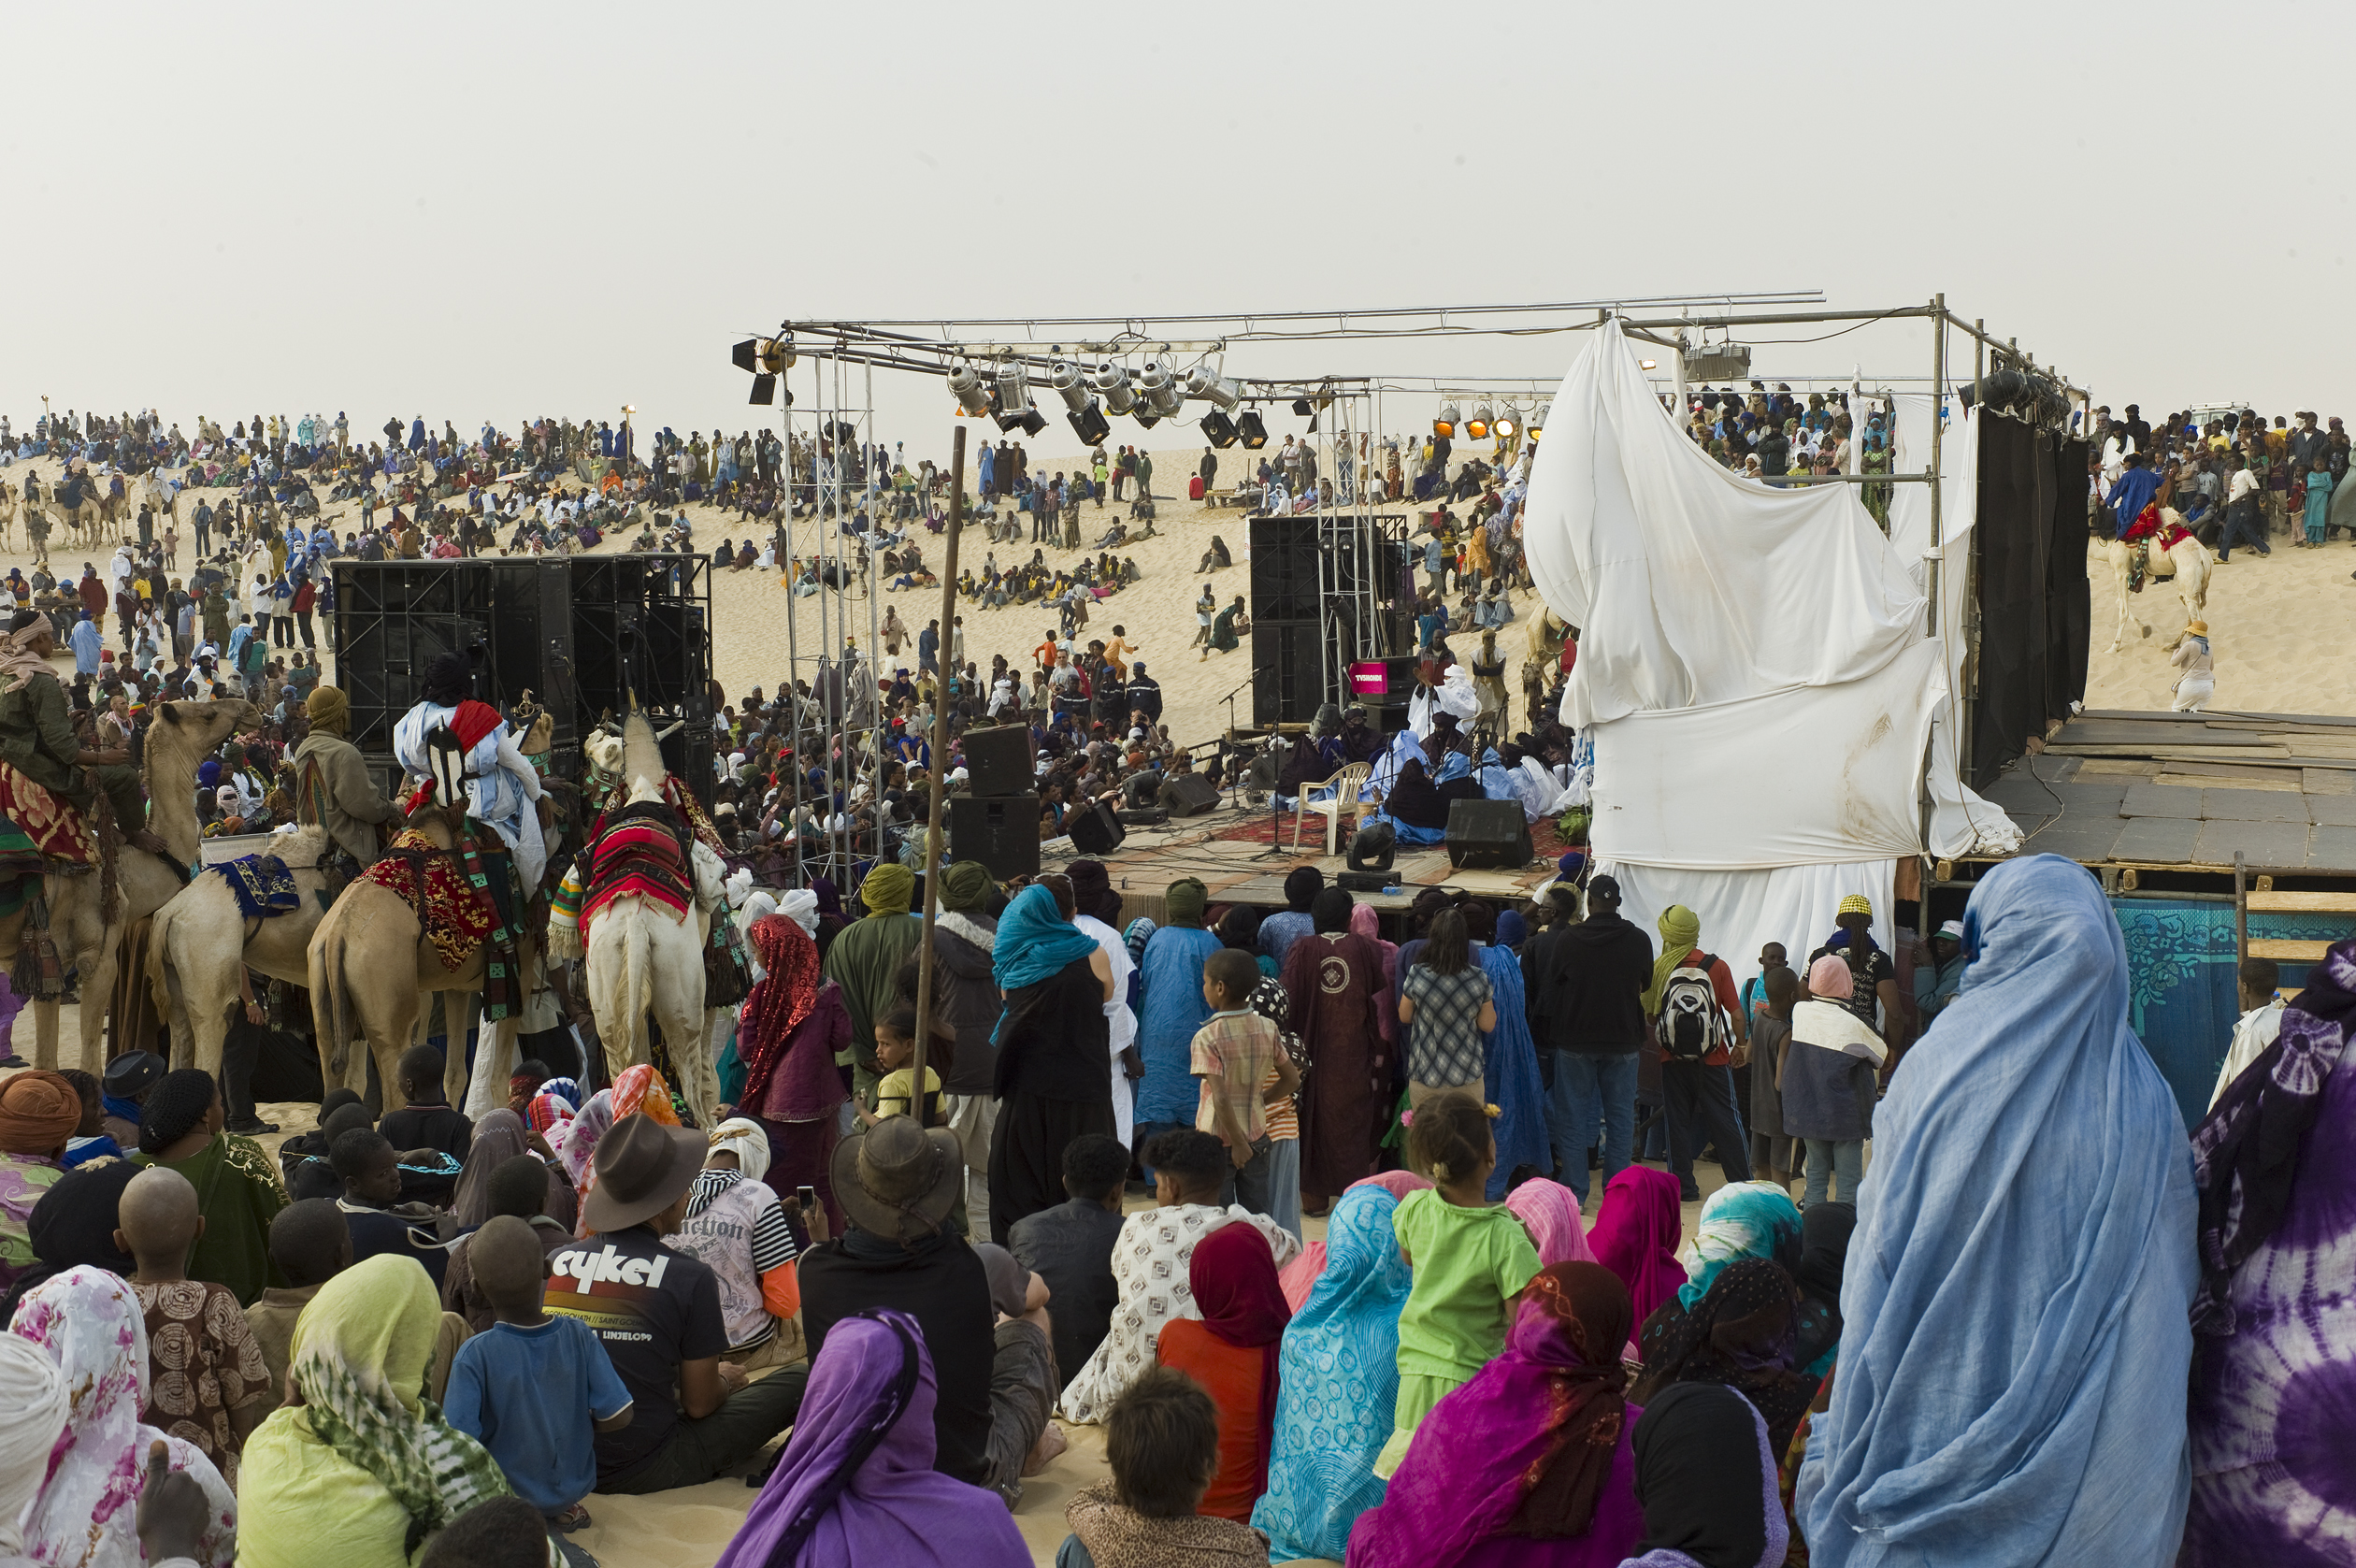 Audience_at_the_Festival_au_Desert_near_Timbuktu,_Mali_2012